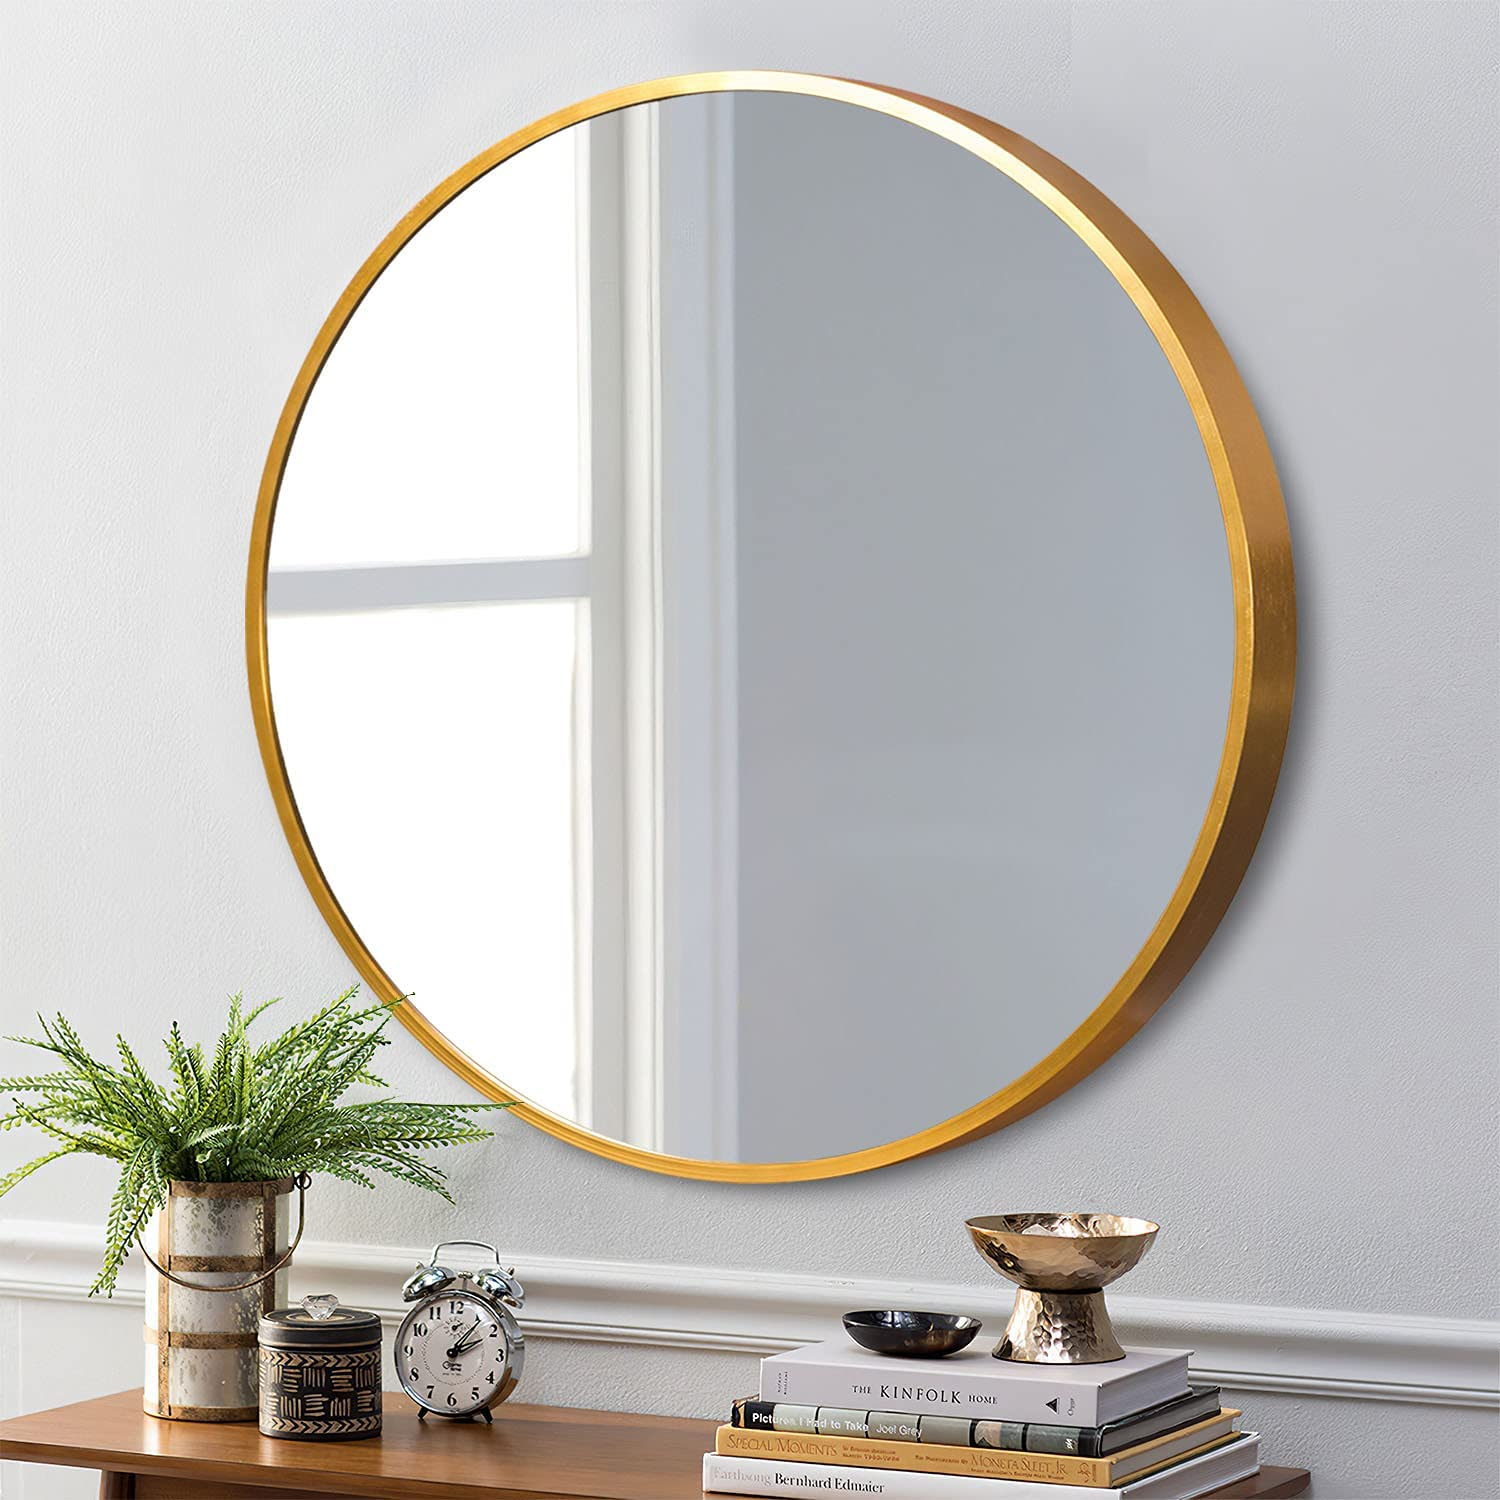 ZHOWI Decor Round Wall Mirror 28 Inch Gold, Circle Wall-Mounted Mirror for Living Room, Entryway, Bedroom and Bathroom, Aluminum Frame and Shatter-Proof Glass (Gold, 28